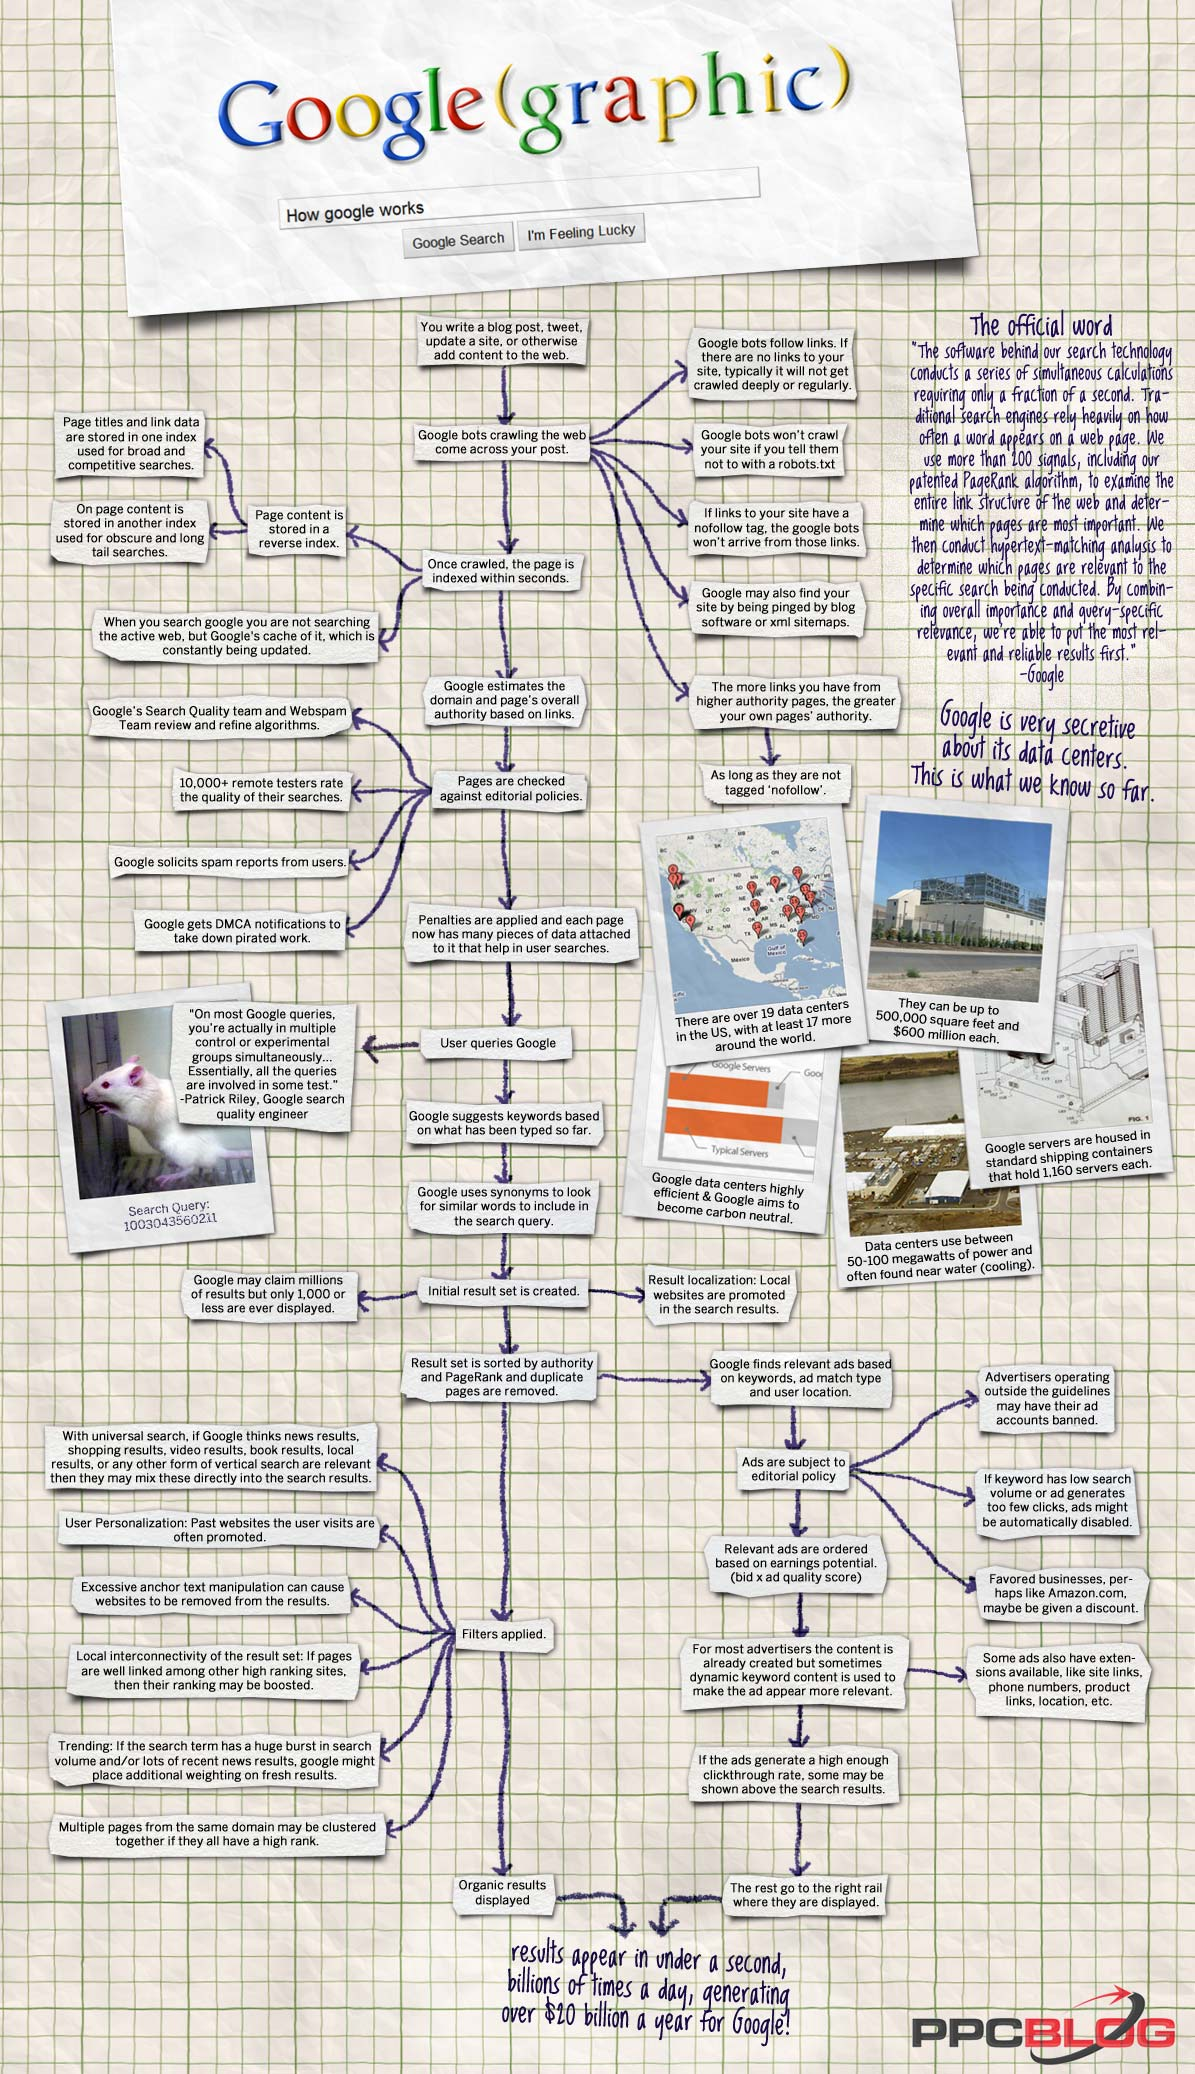 How-Google-Works-infographic